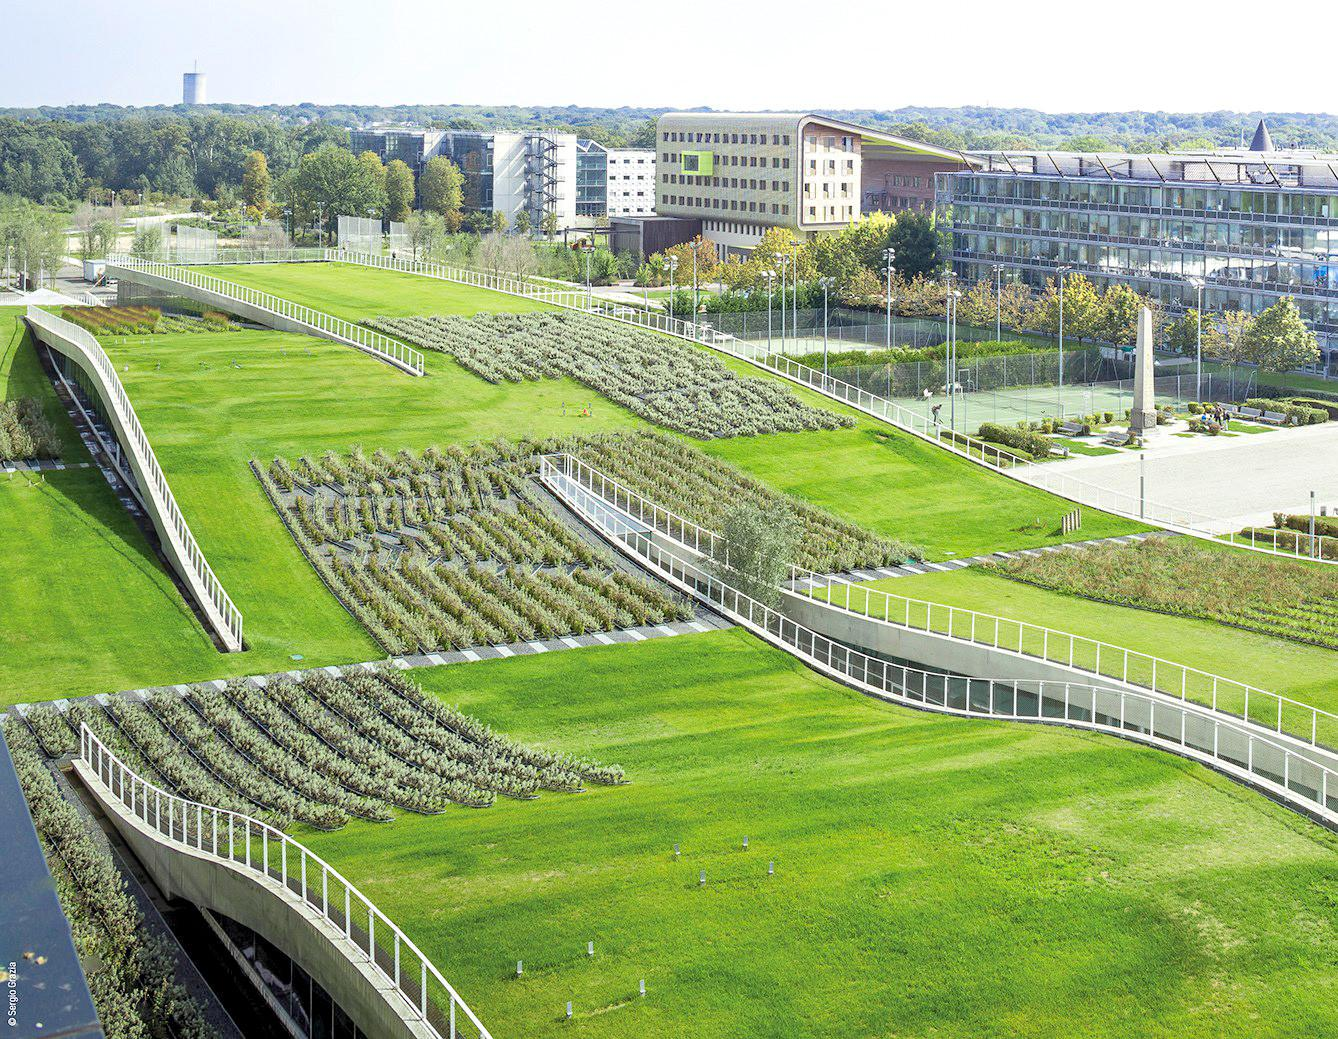 France Requires All New Buildings Have Green Roofs